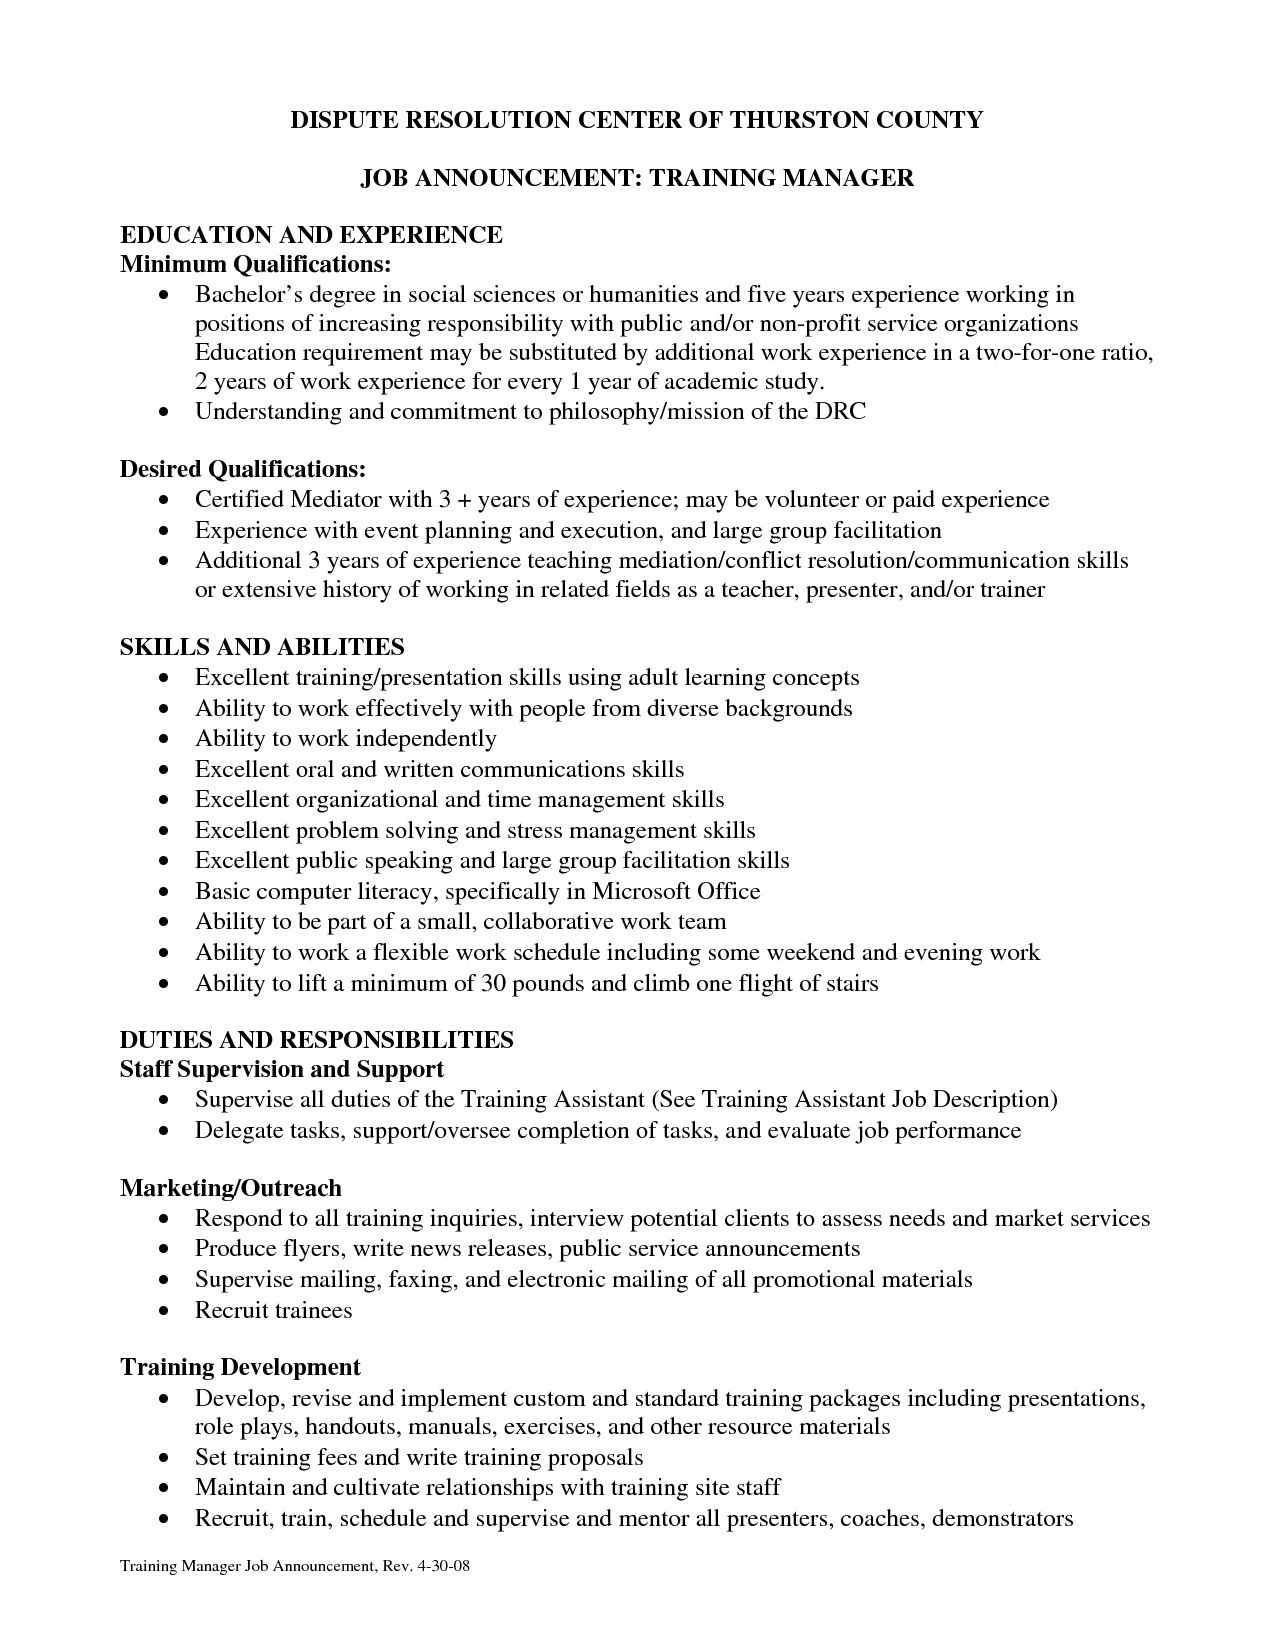 Great Training Coordinator Resume Cover Letter   Training Coordinator Resume Cover  Letter We Provide As Reference To Make Correct And Good Quality Resume.